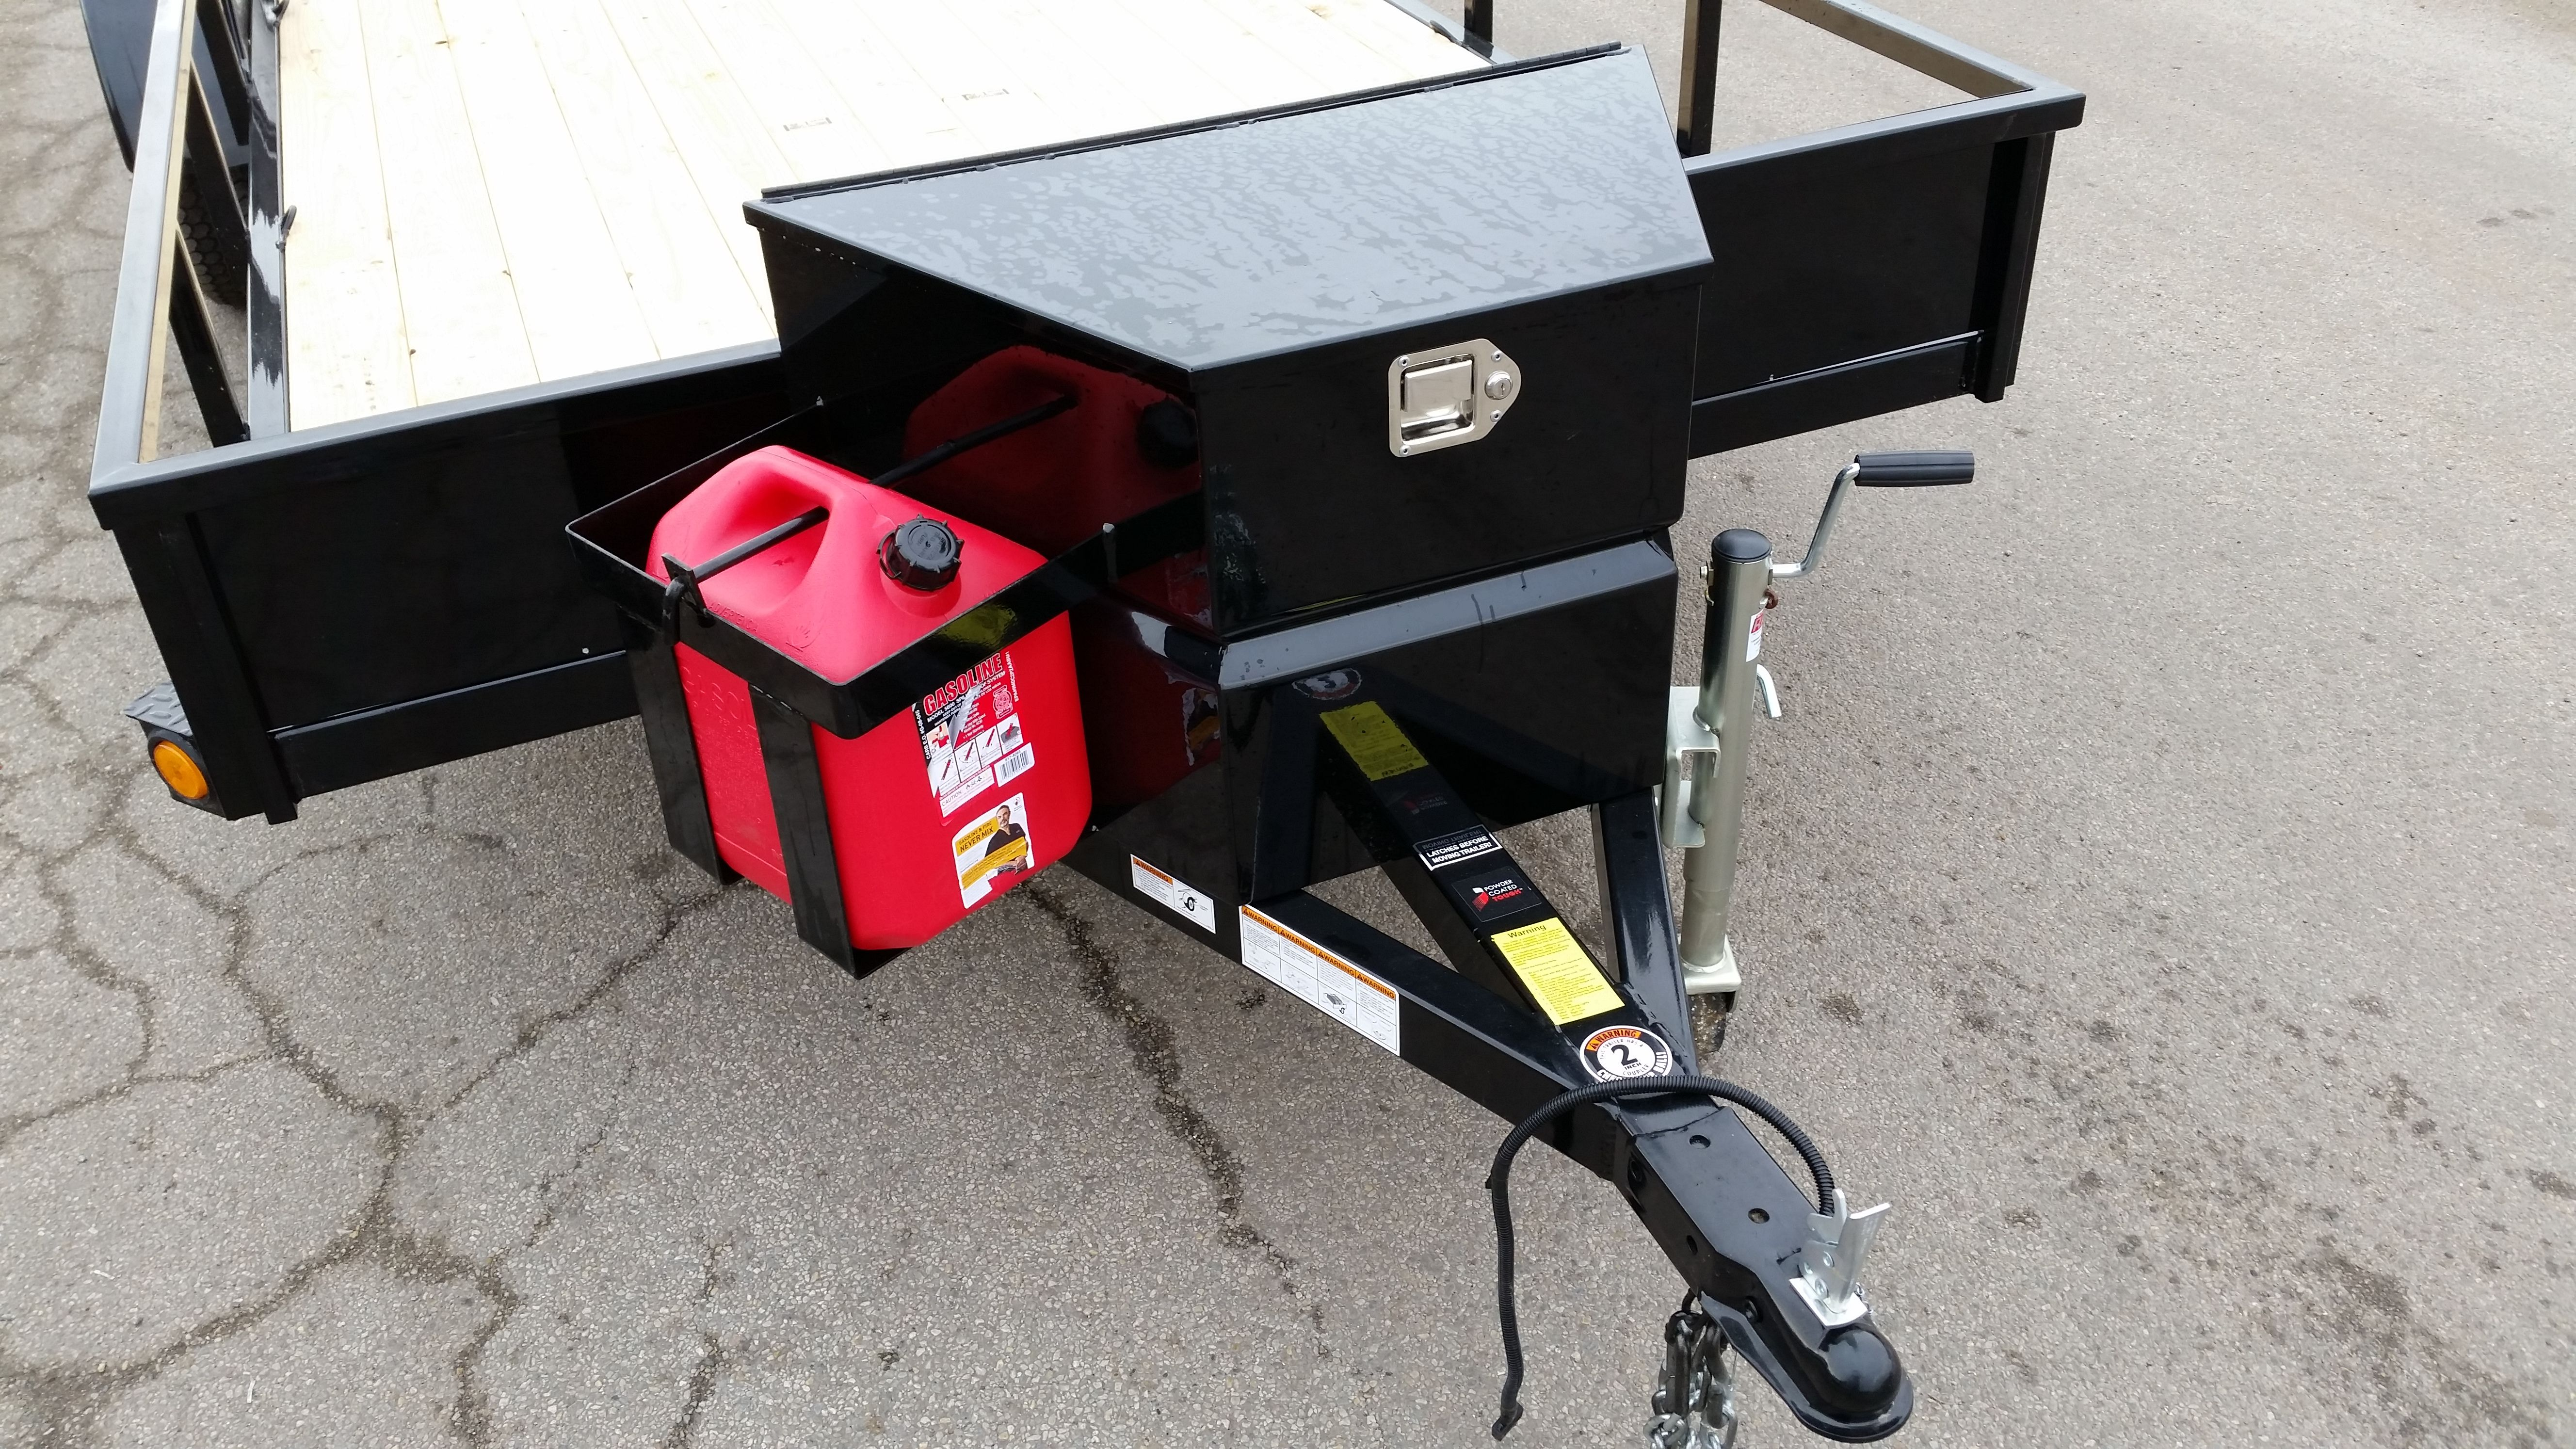 echo trailers extra large tongue box and five gallon gas can rack compatible with all echo advantage ultimate atv campingbus verkaufsanhanger fahrrad ideen